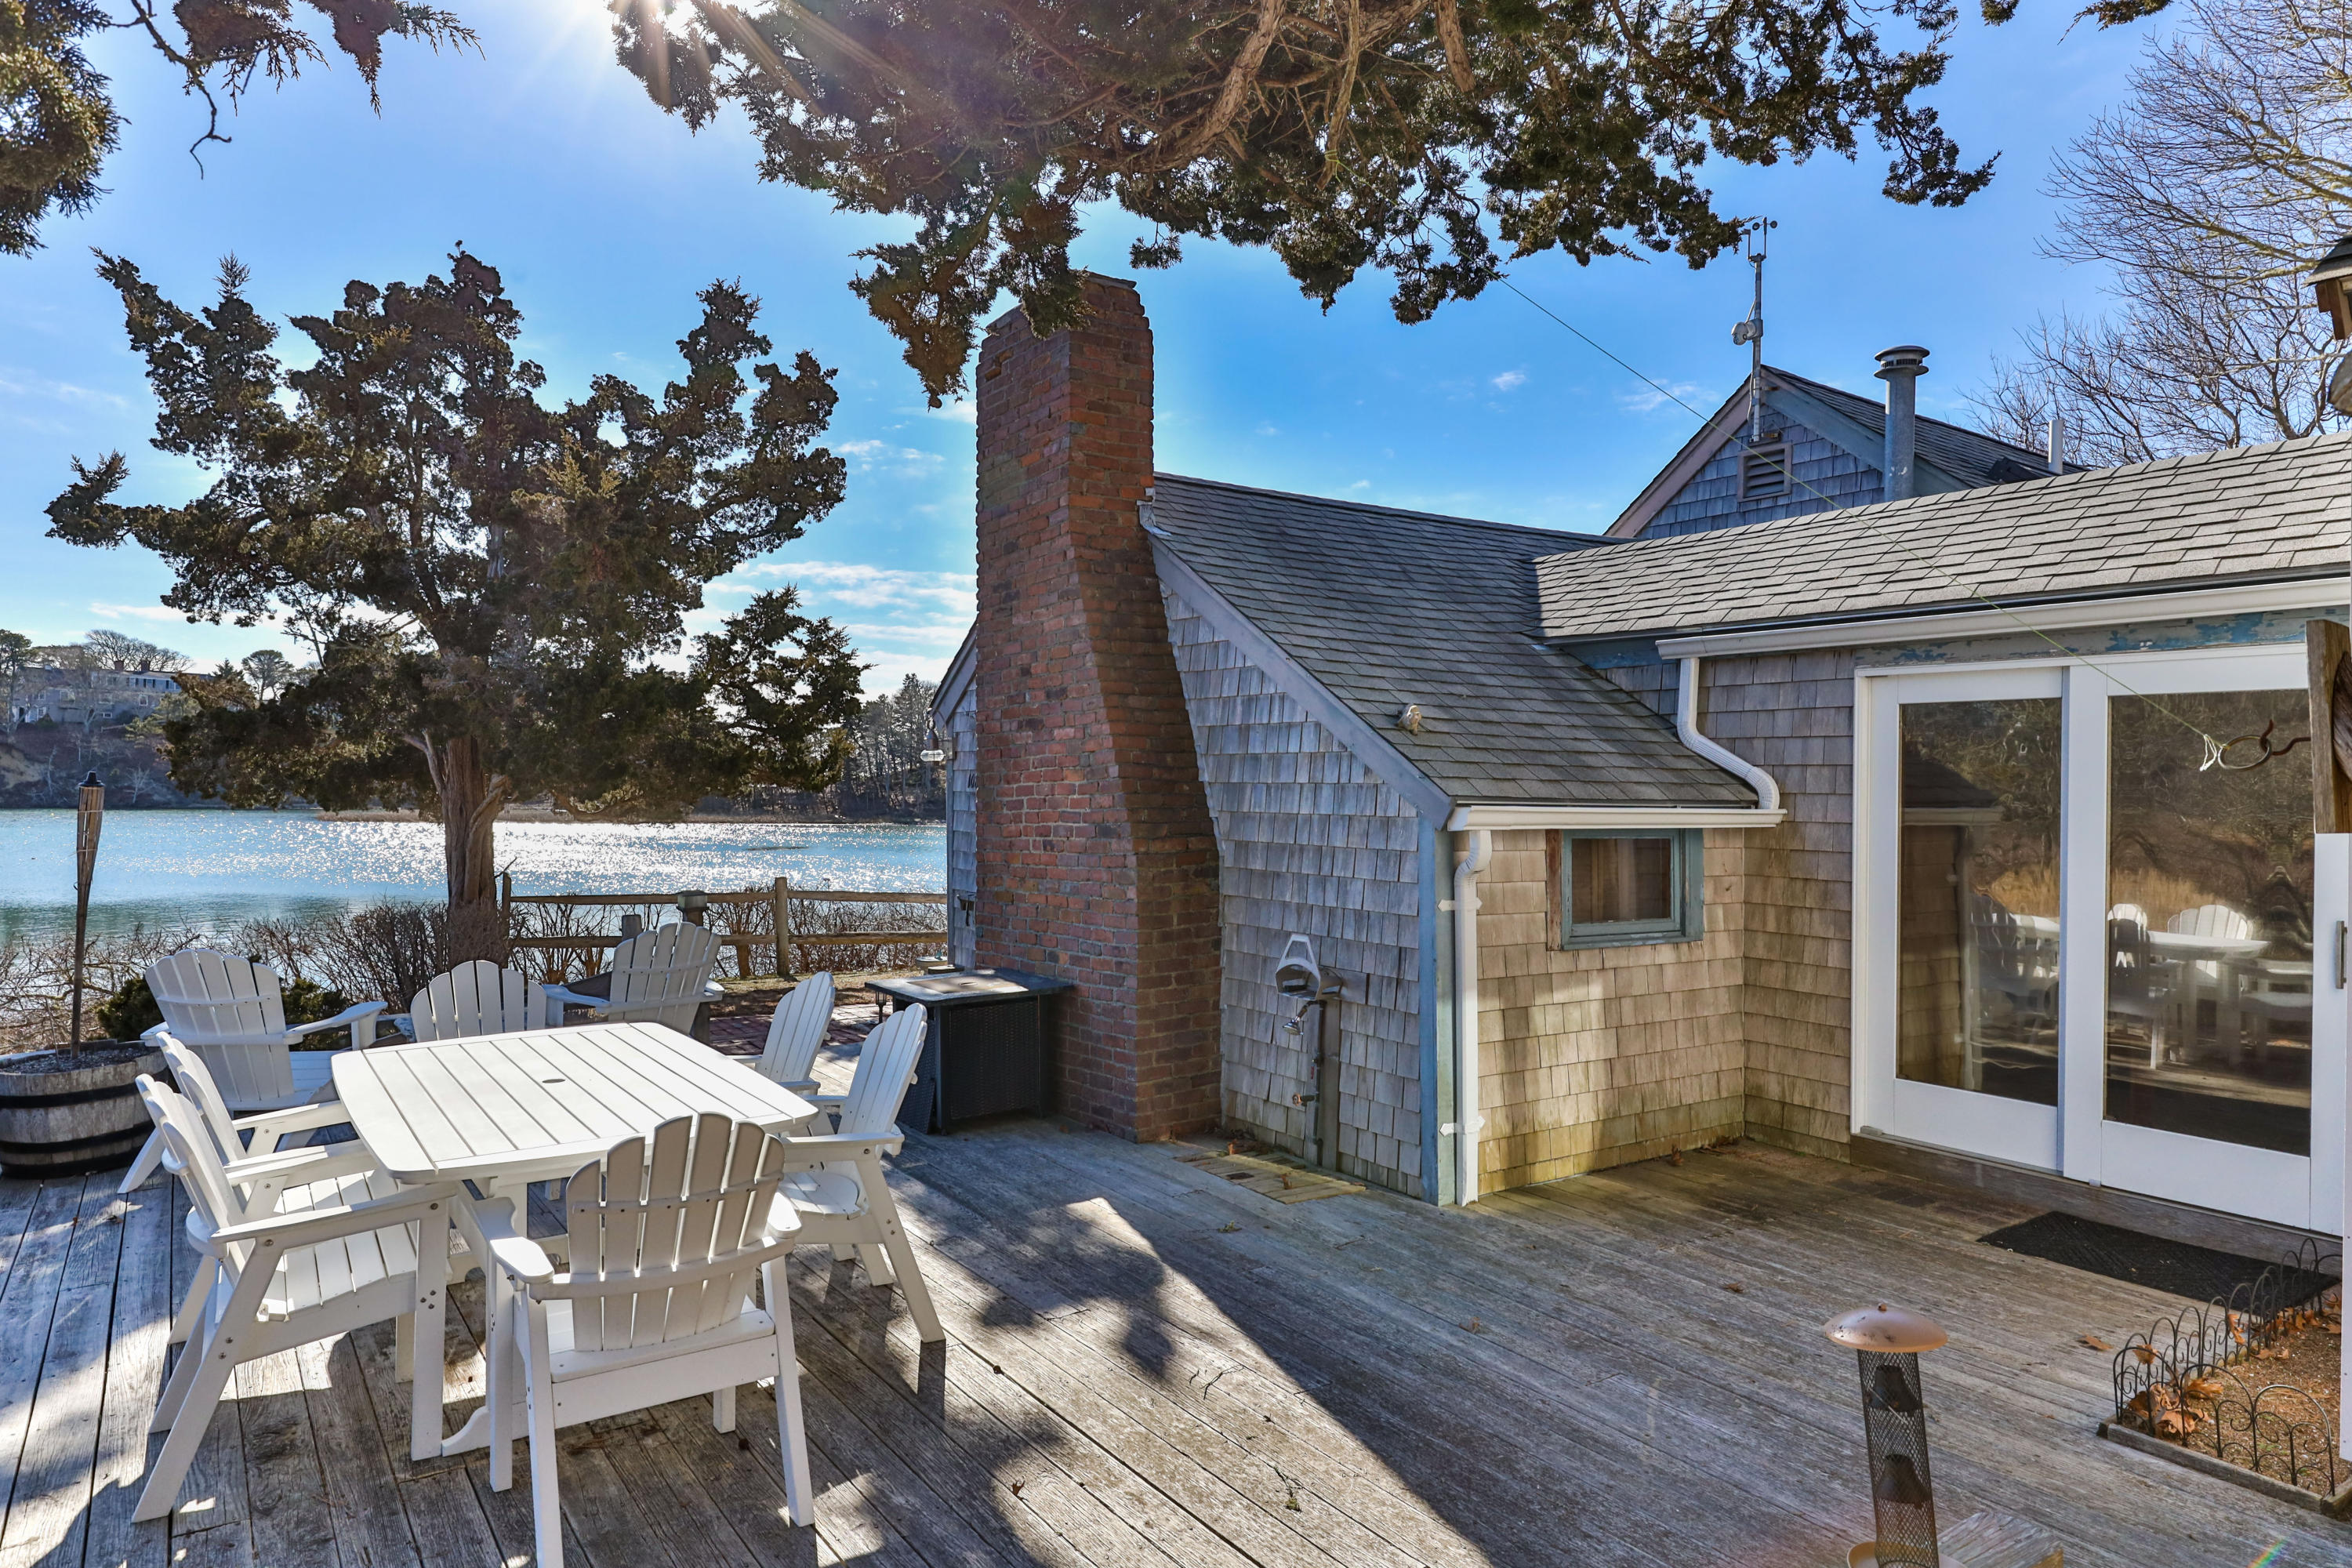 108 Beach Plum Road, Chatham, MA details